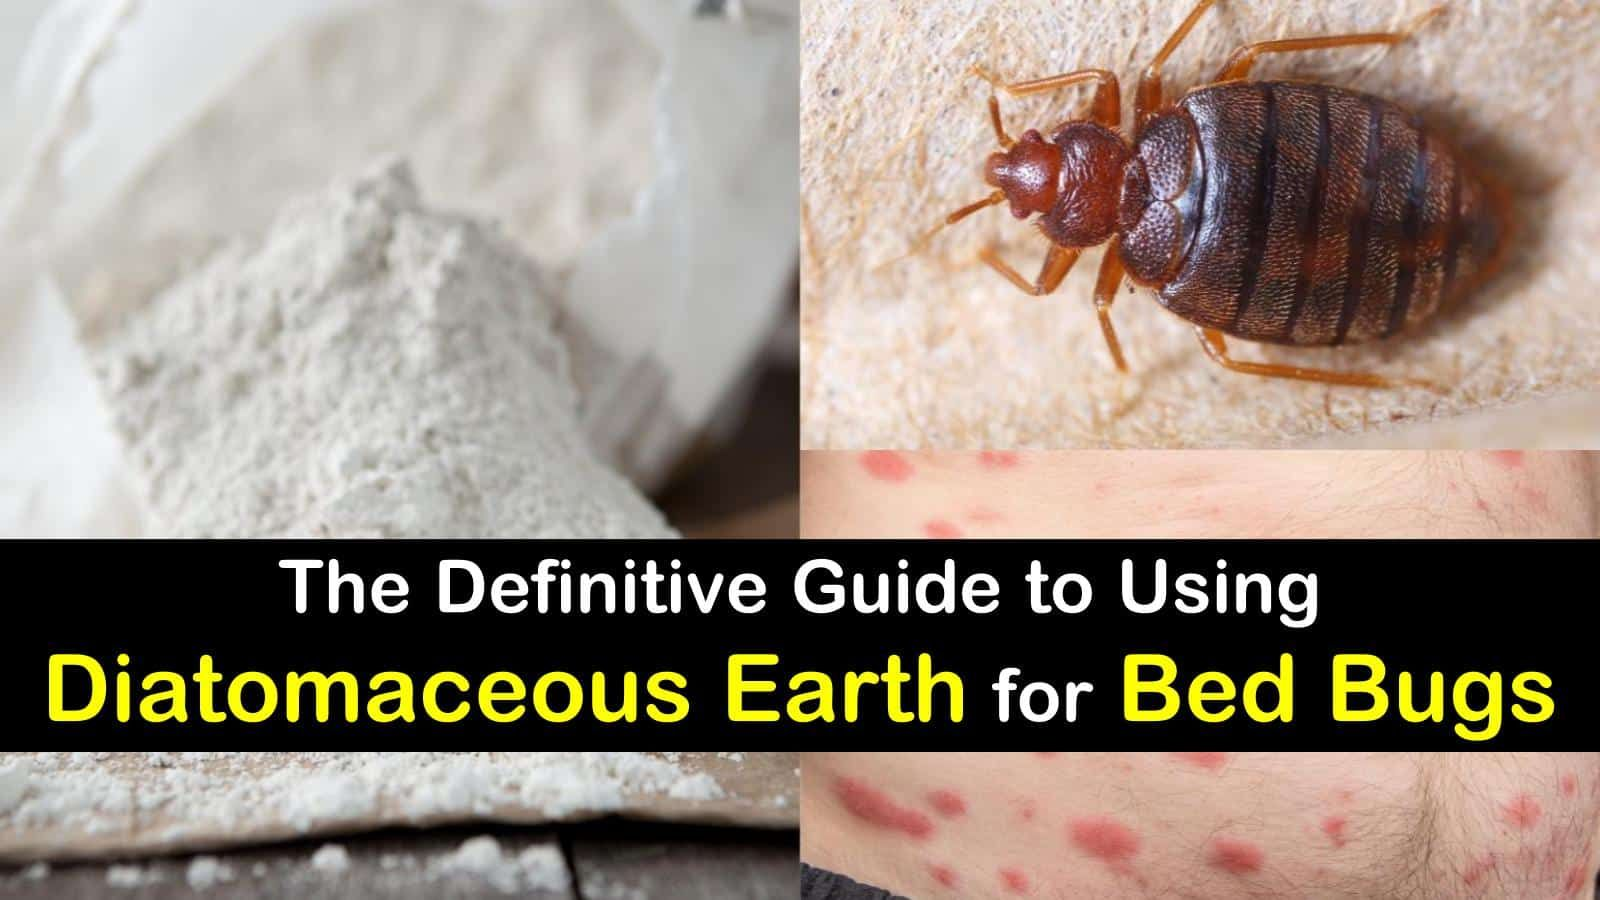 10+ Questions Answered about Using Diatomaceous Earth for